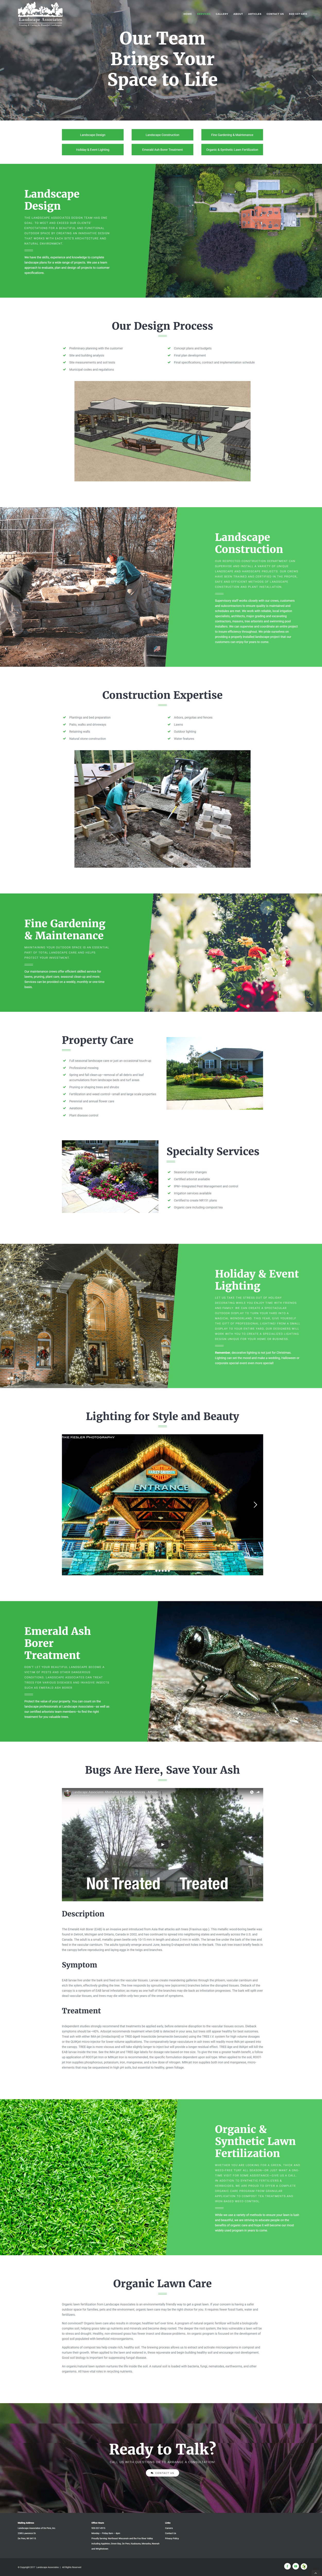 Services Page